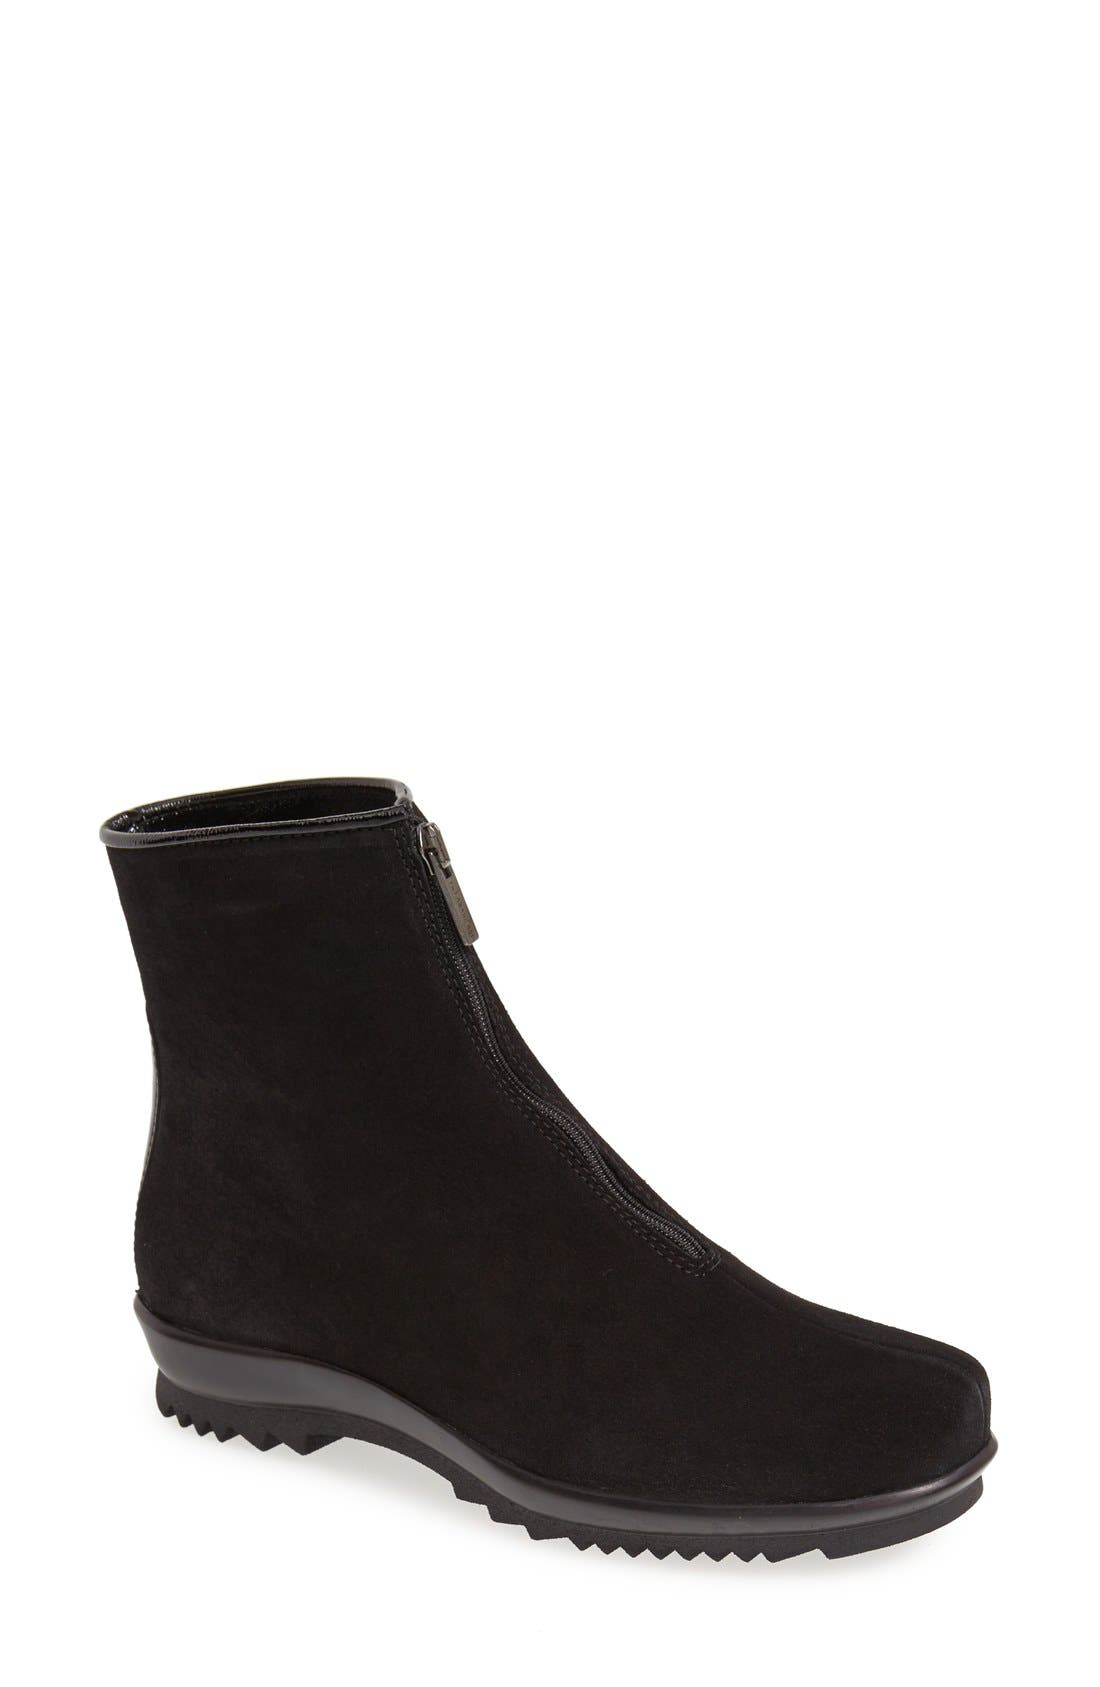 La Canadienne 'Tiana' Weatherproof Boot (Women)